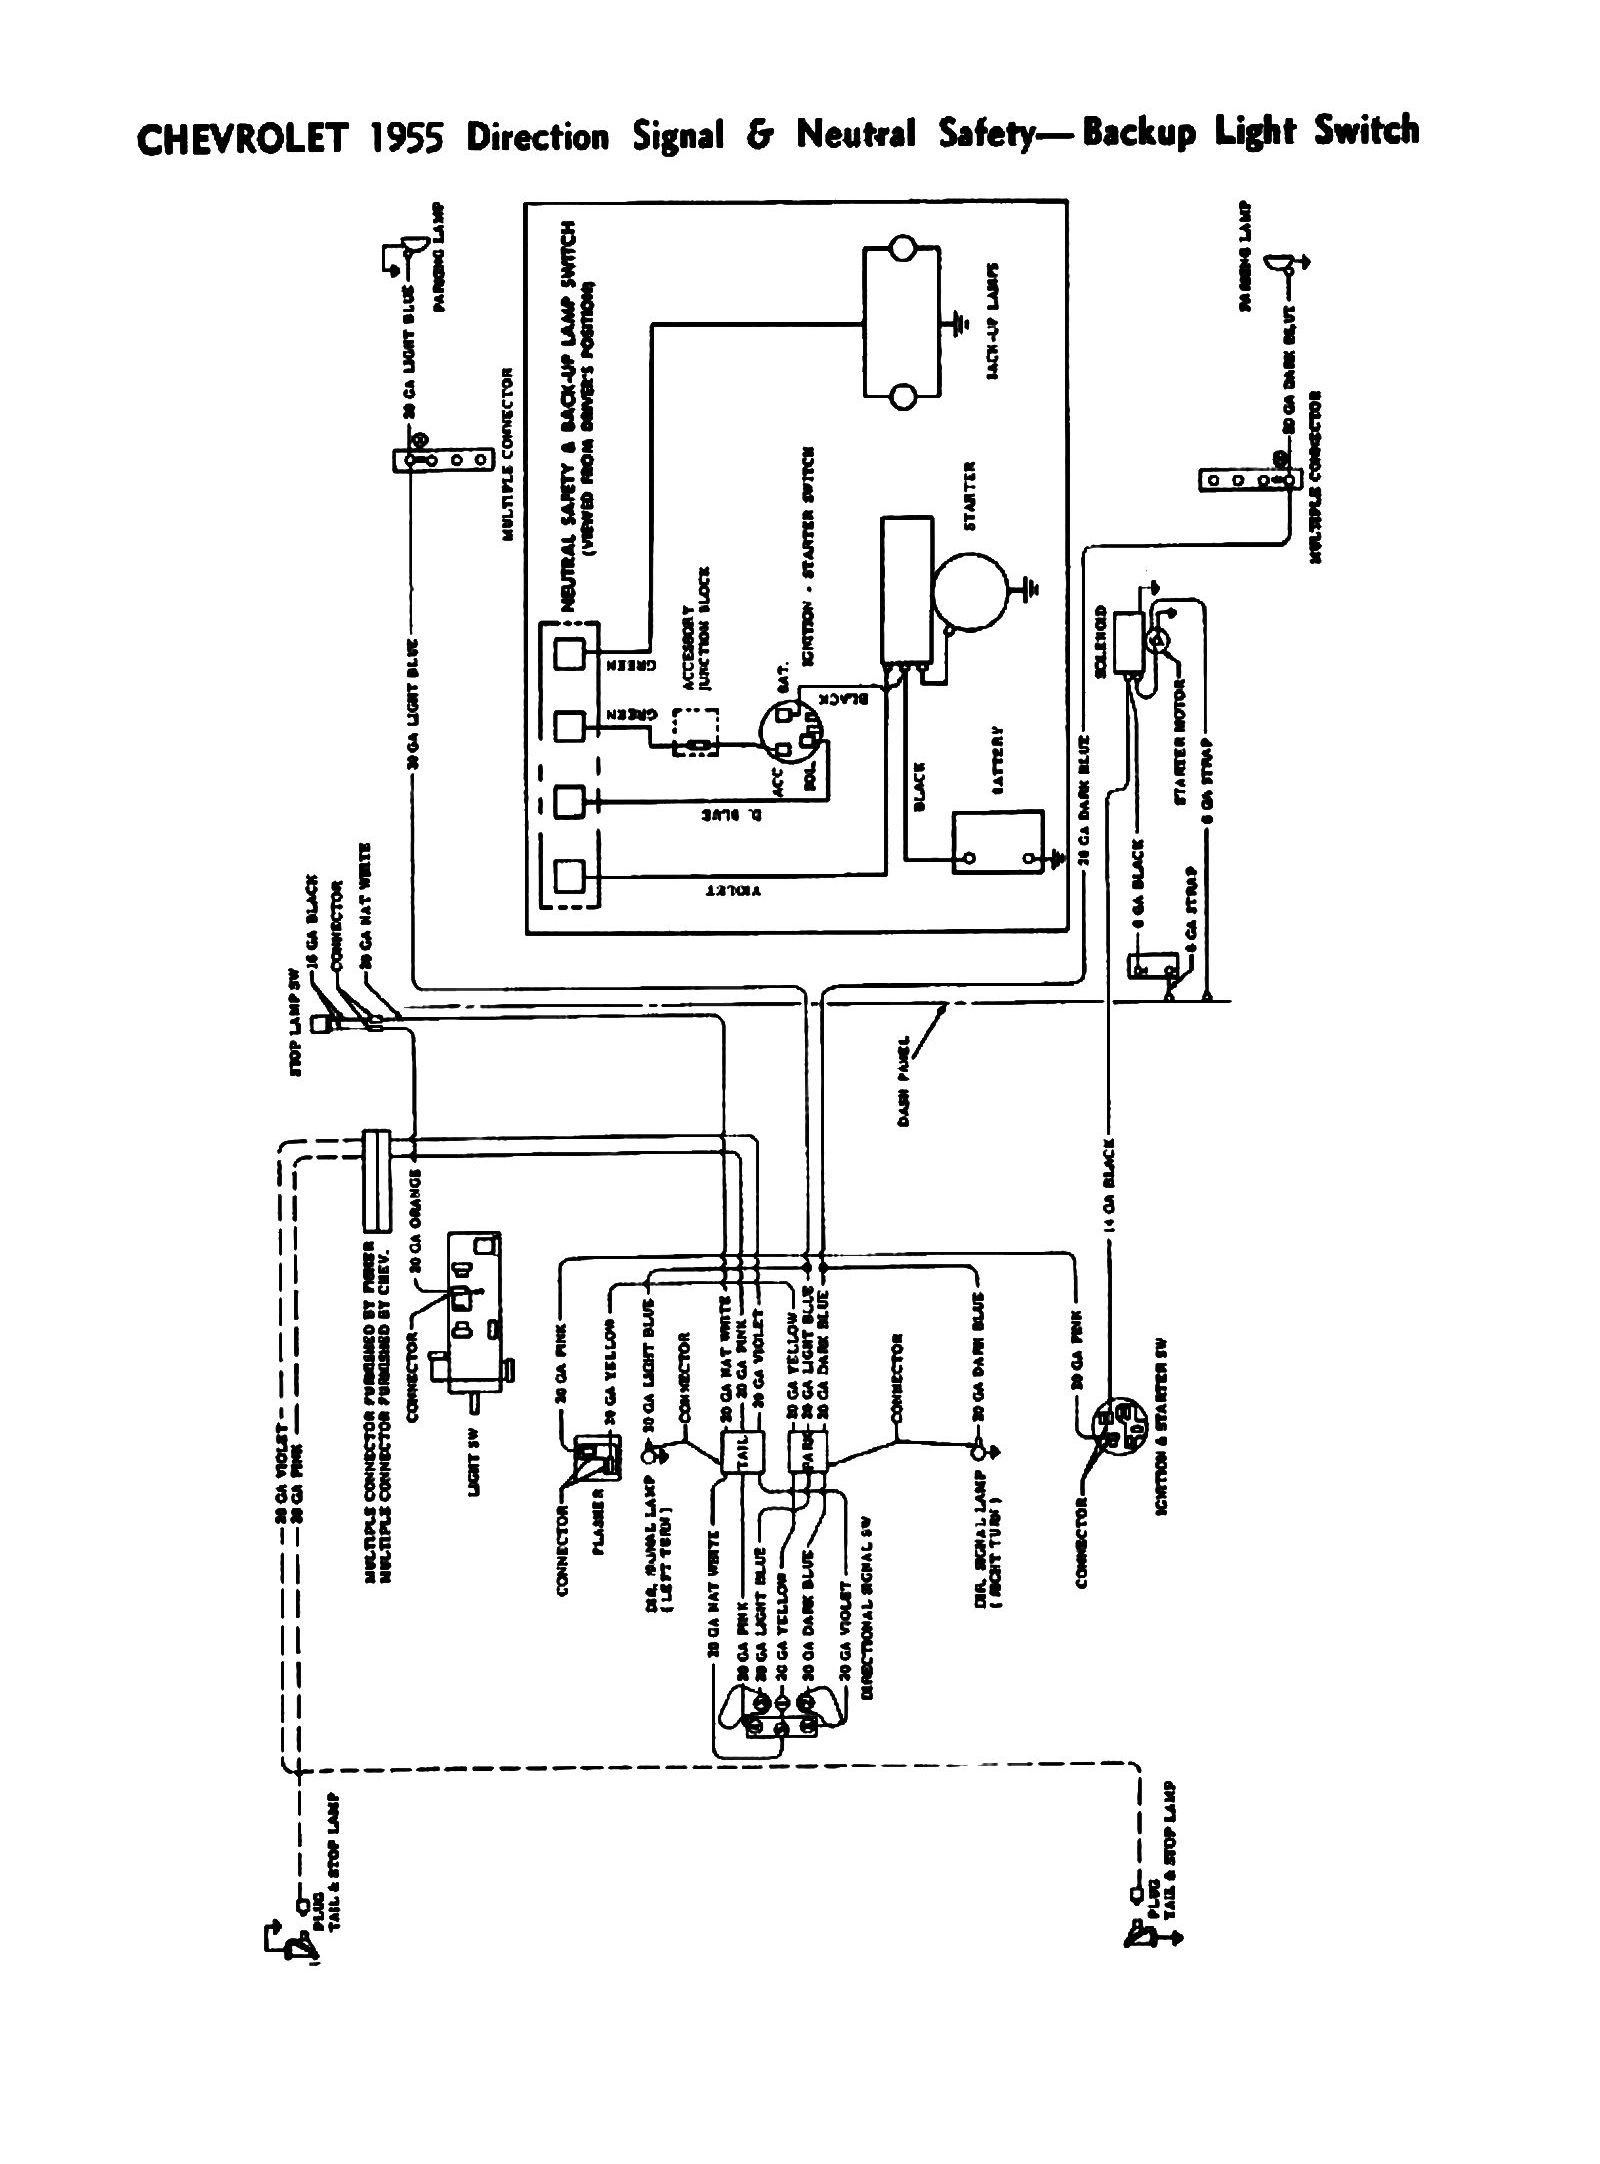 2003 silverado door switch wiring diagram